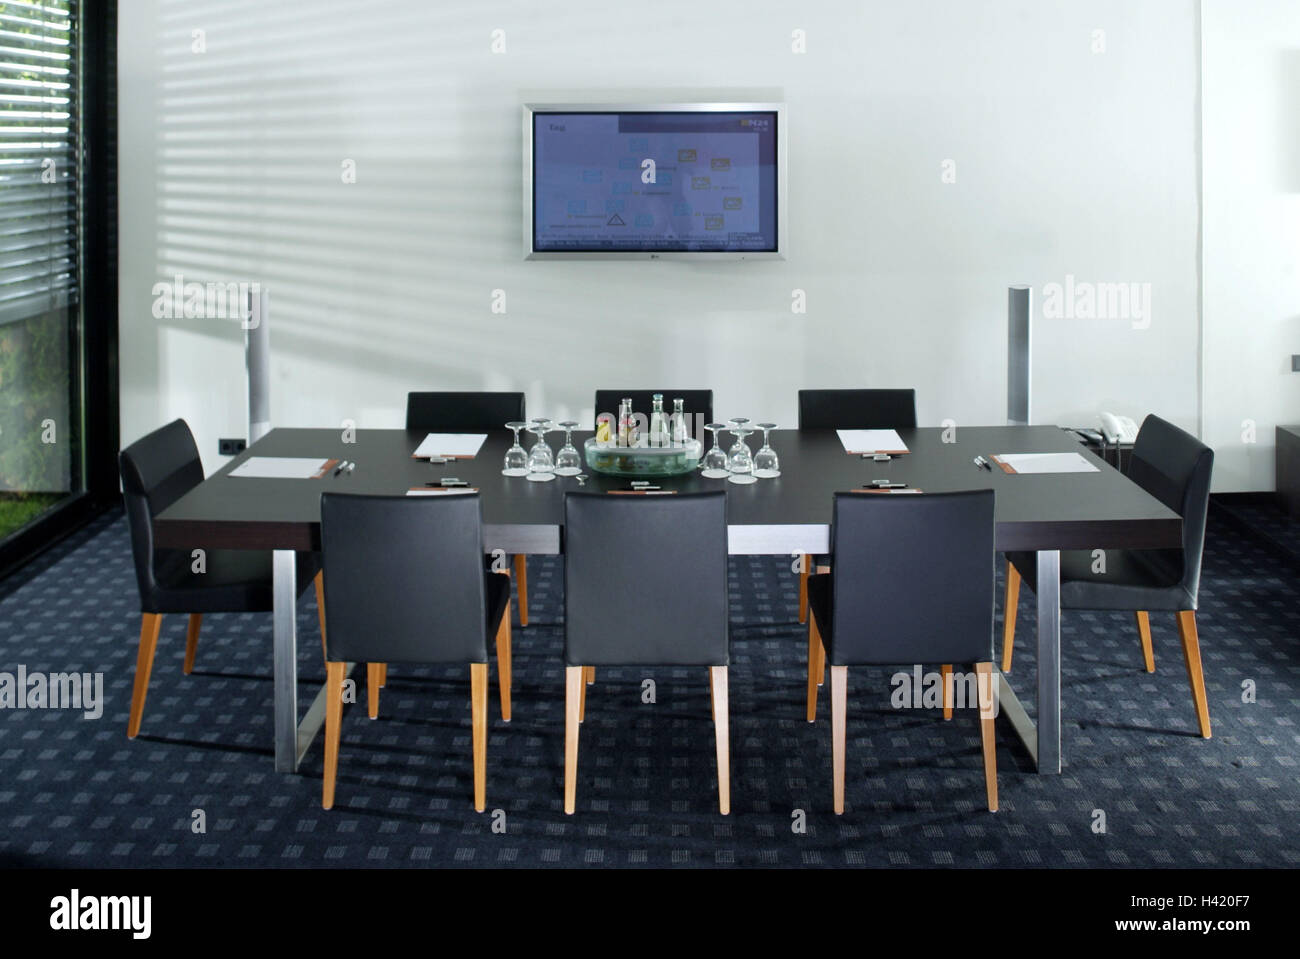 Meeting Room, Conference Table, Chairs, Bases, Glasses, Drinks, Wall, Flat  Screen TV Conference Room, Office, Meeting, Conference, Business, Company,  ...